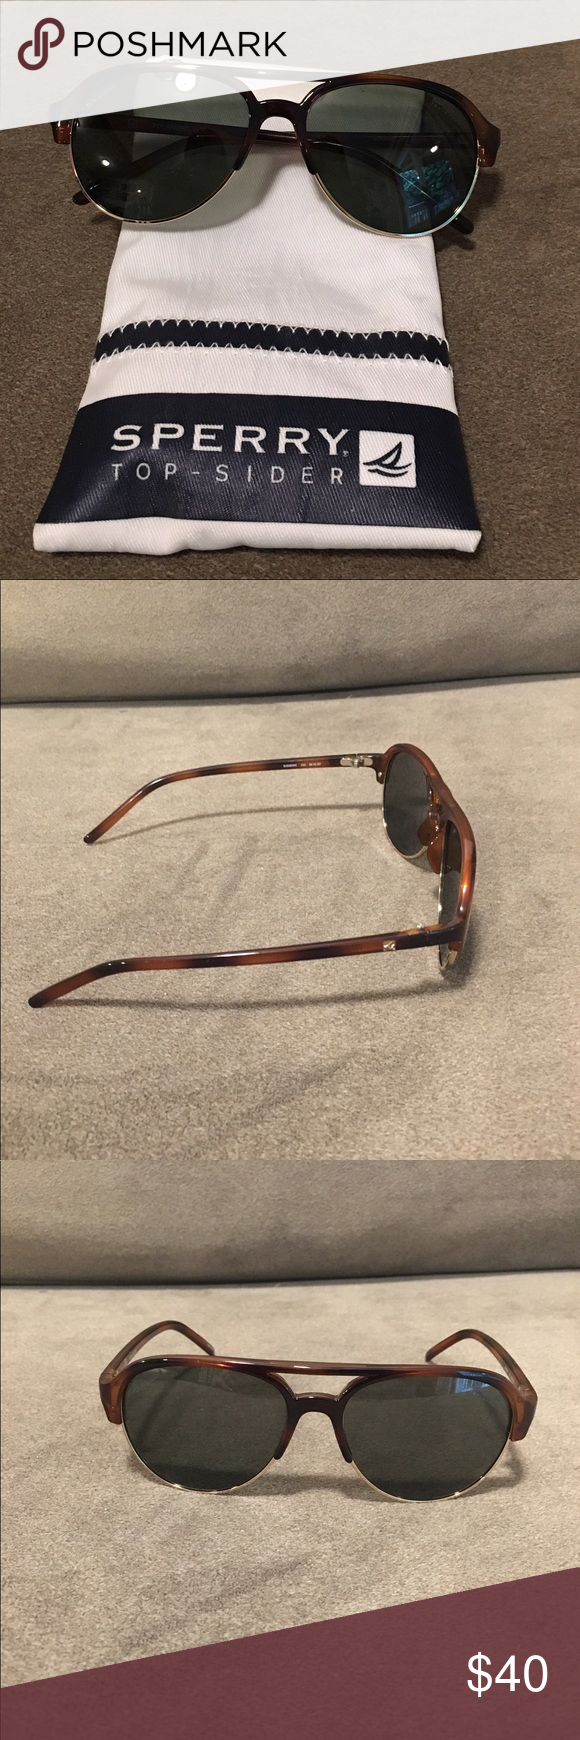 21b2db23c0 Sperry Sussex Aviator Sunglasses New! Never worn! Tortoise colored half  rims. Polarized lenses. Classic and stylish! Protective case included.